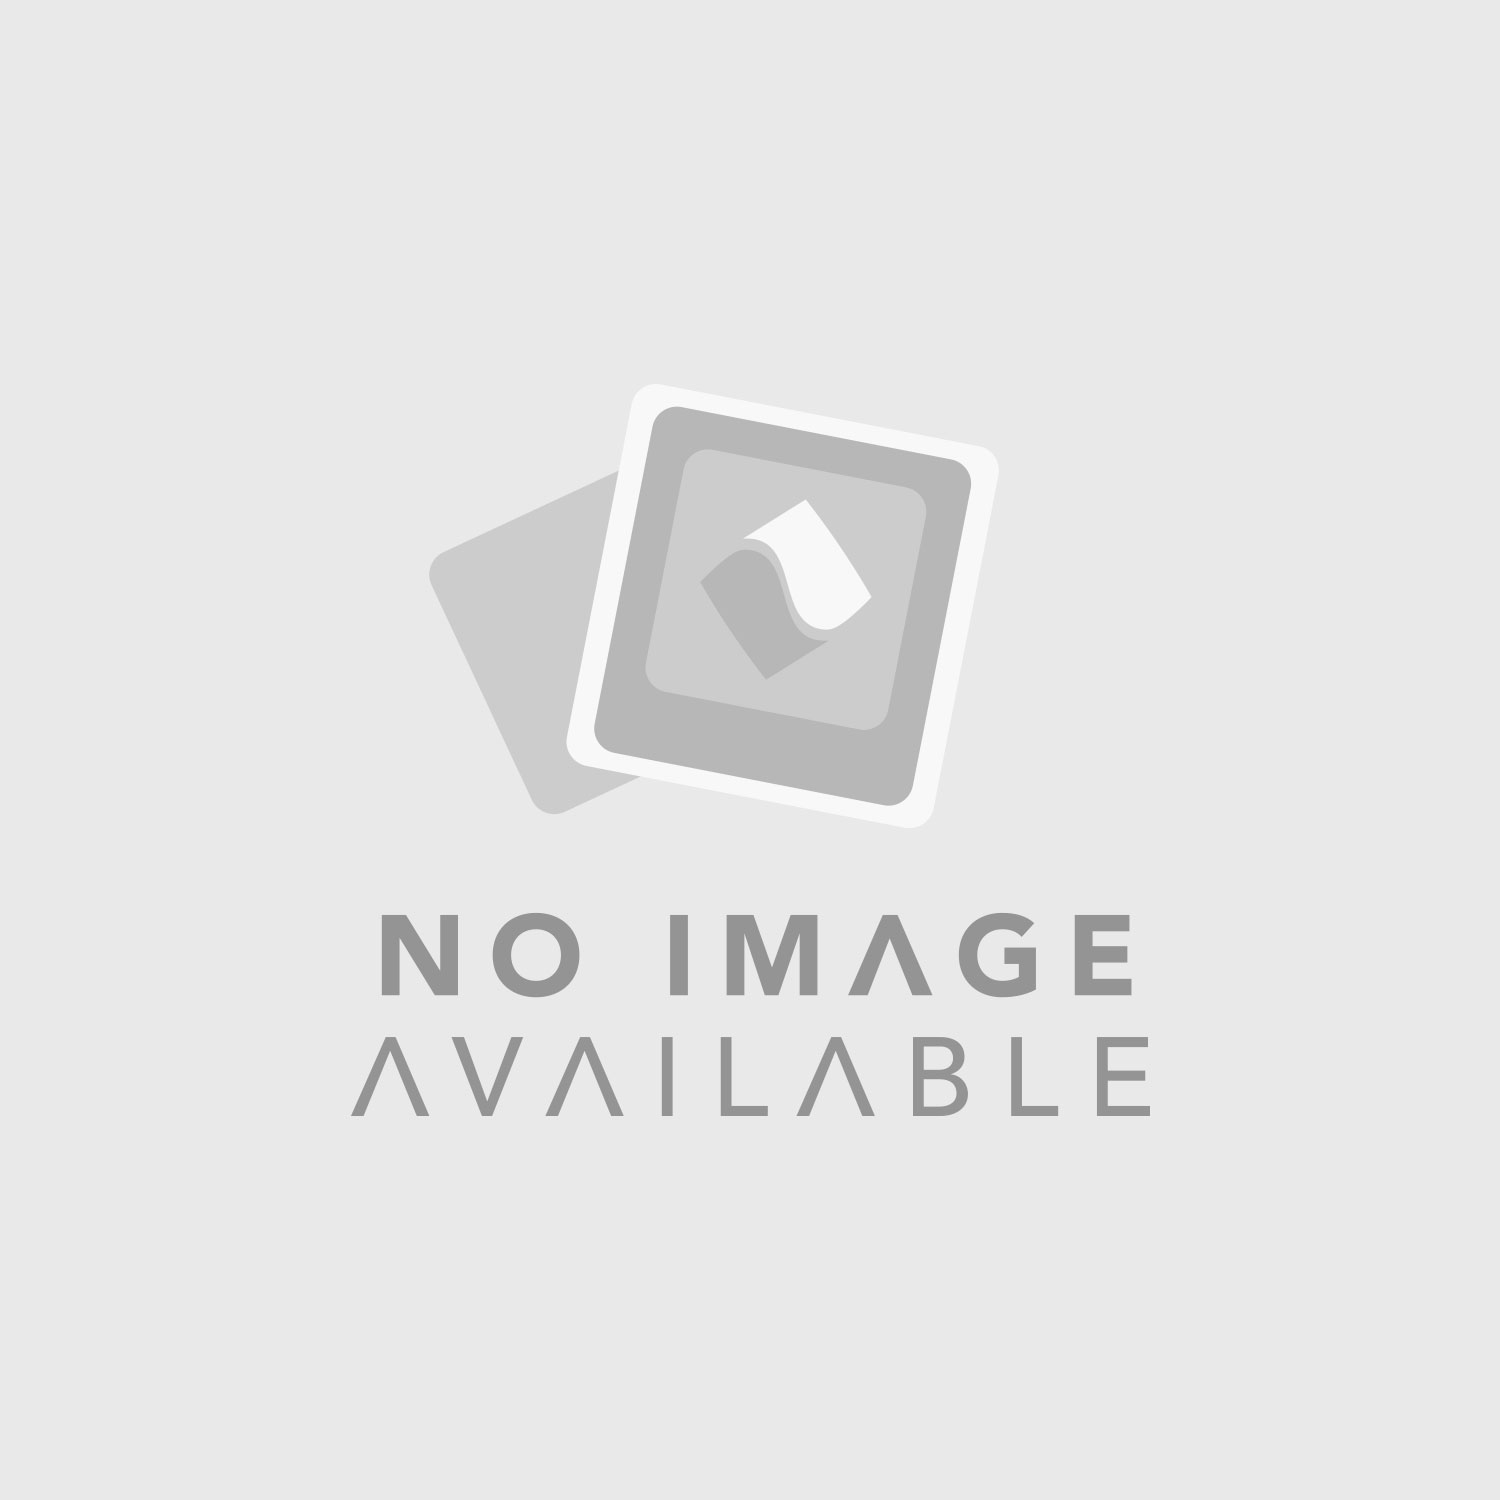 Rode RodeCaster Pro Ultimate 4 Guest Podcasting Bundle with PD-70 Mics (Compass Boom Arms)